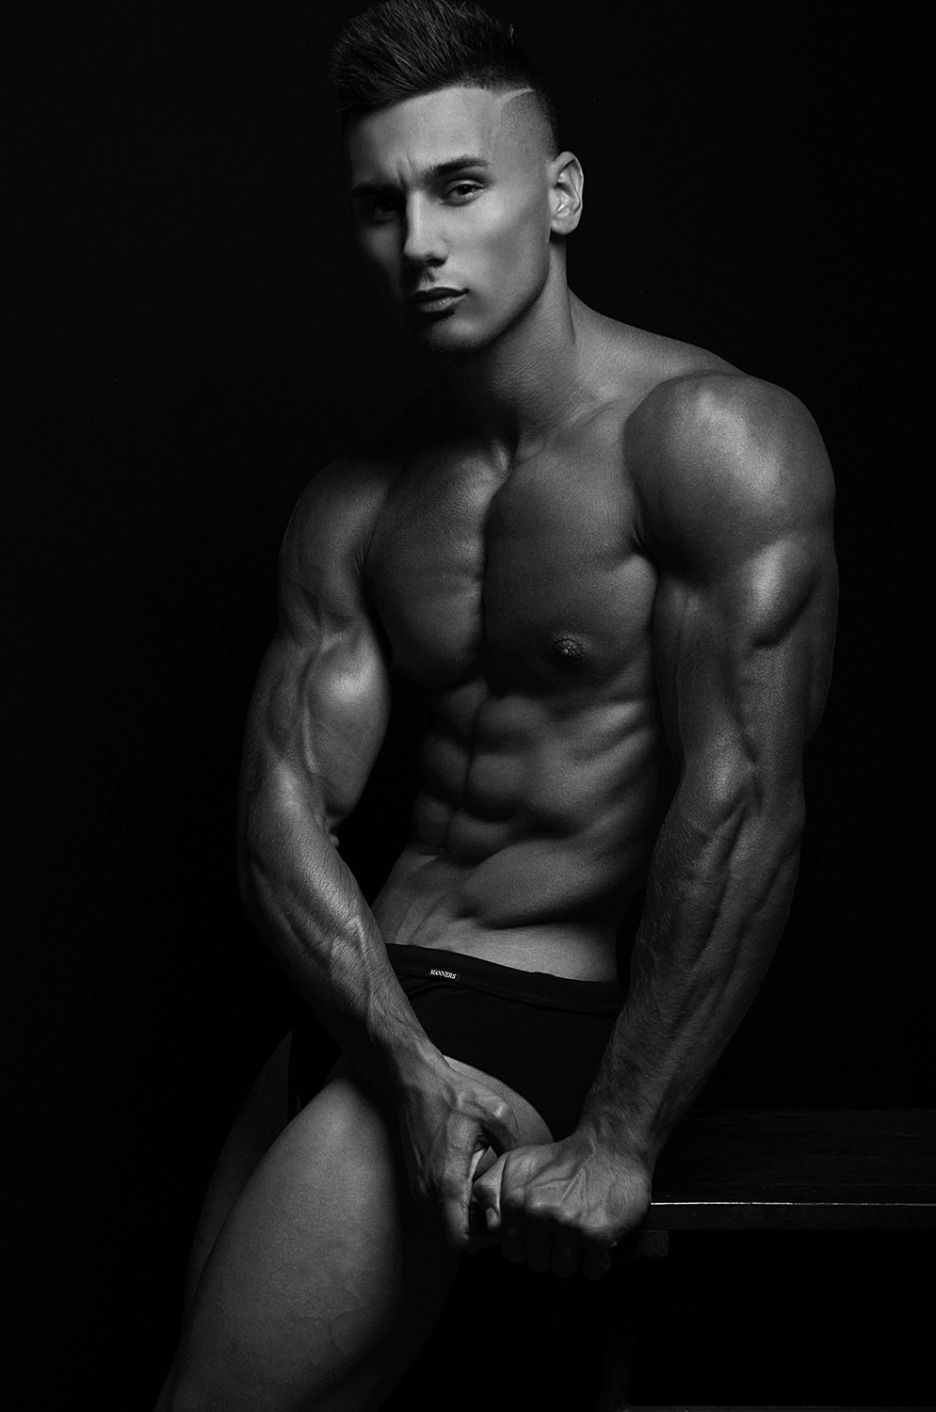 and Hunks posing flexing muscle